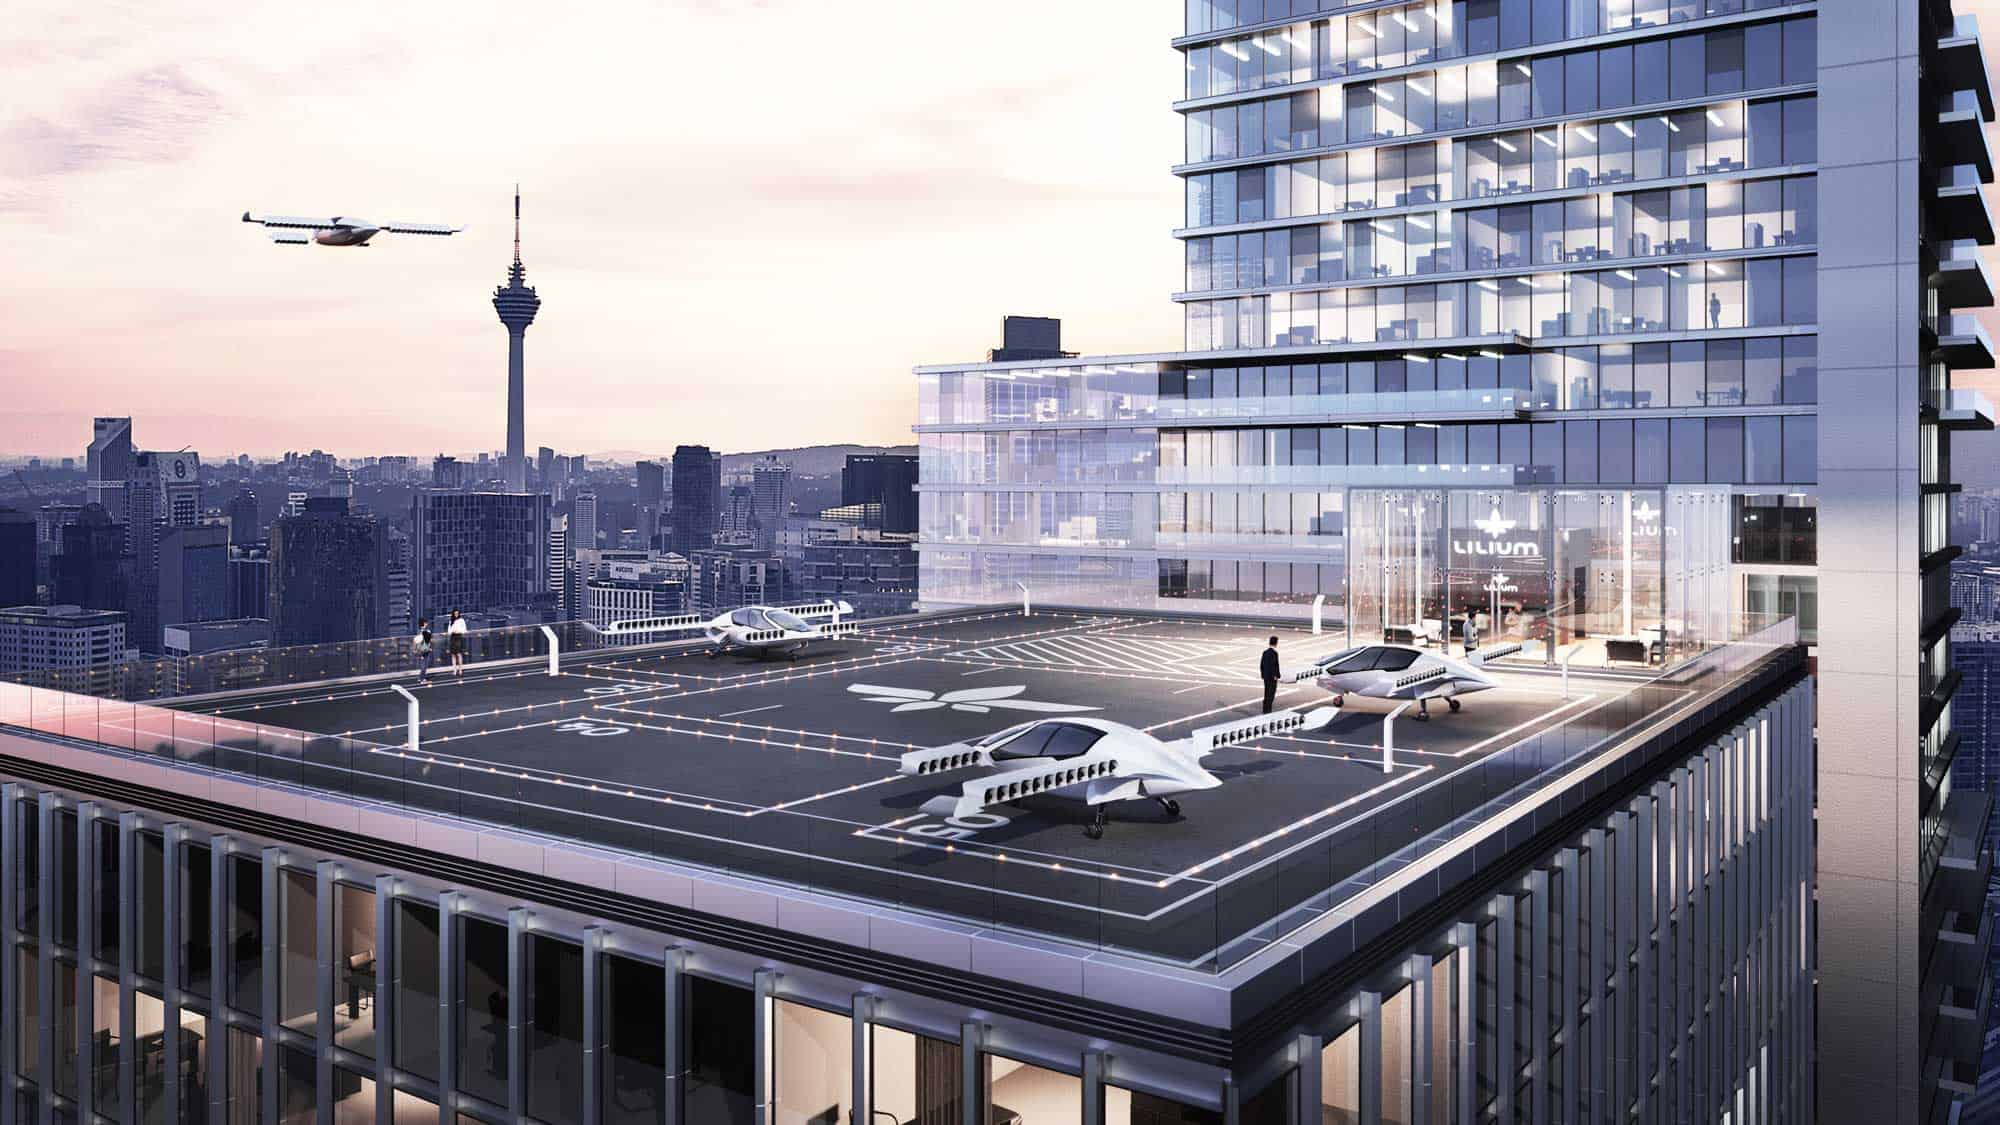 Artist's Rendering of a Lilium Landing Pad on a Rooftop